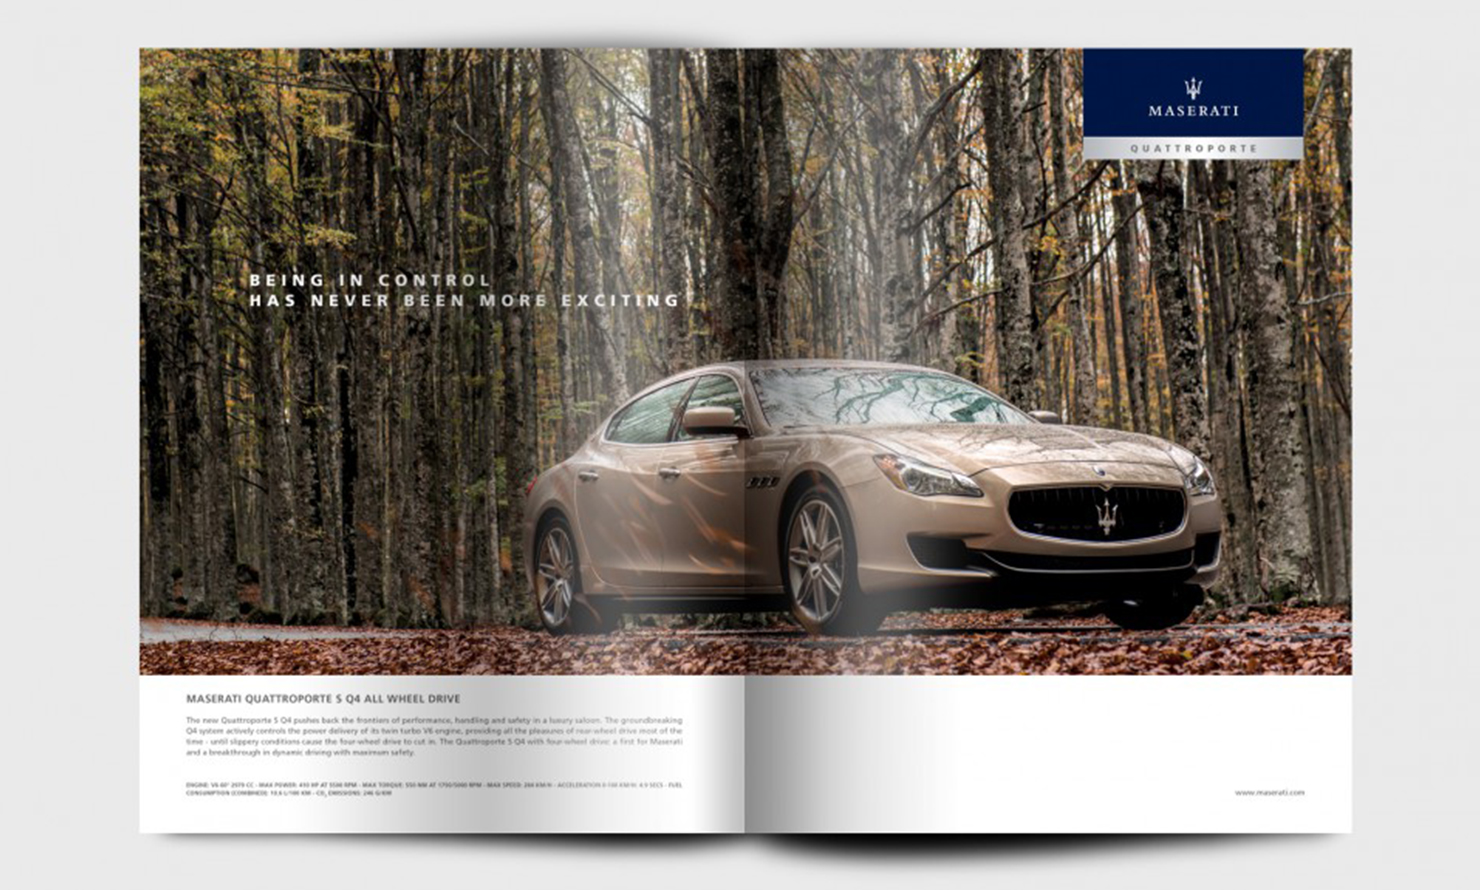 https://www.kubelibre.com/uploads/Slider-work-tutti-clienti/maserati-quattroporte-SQ-4-AWD-being-in-control-has-never-been-more-exciting-2.jpg